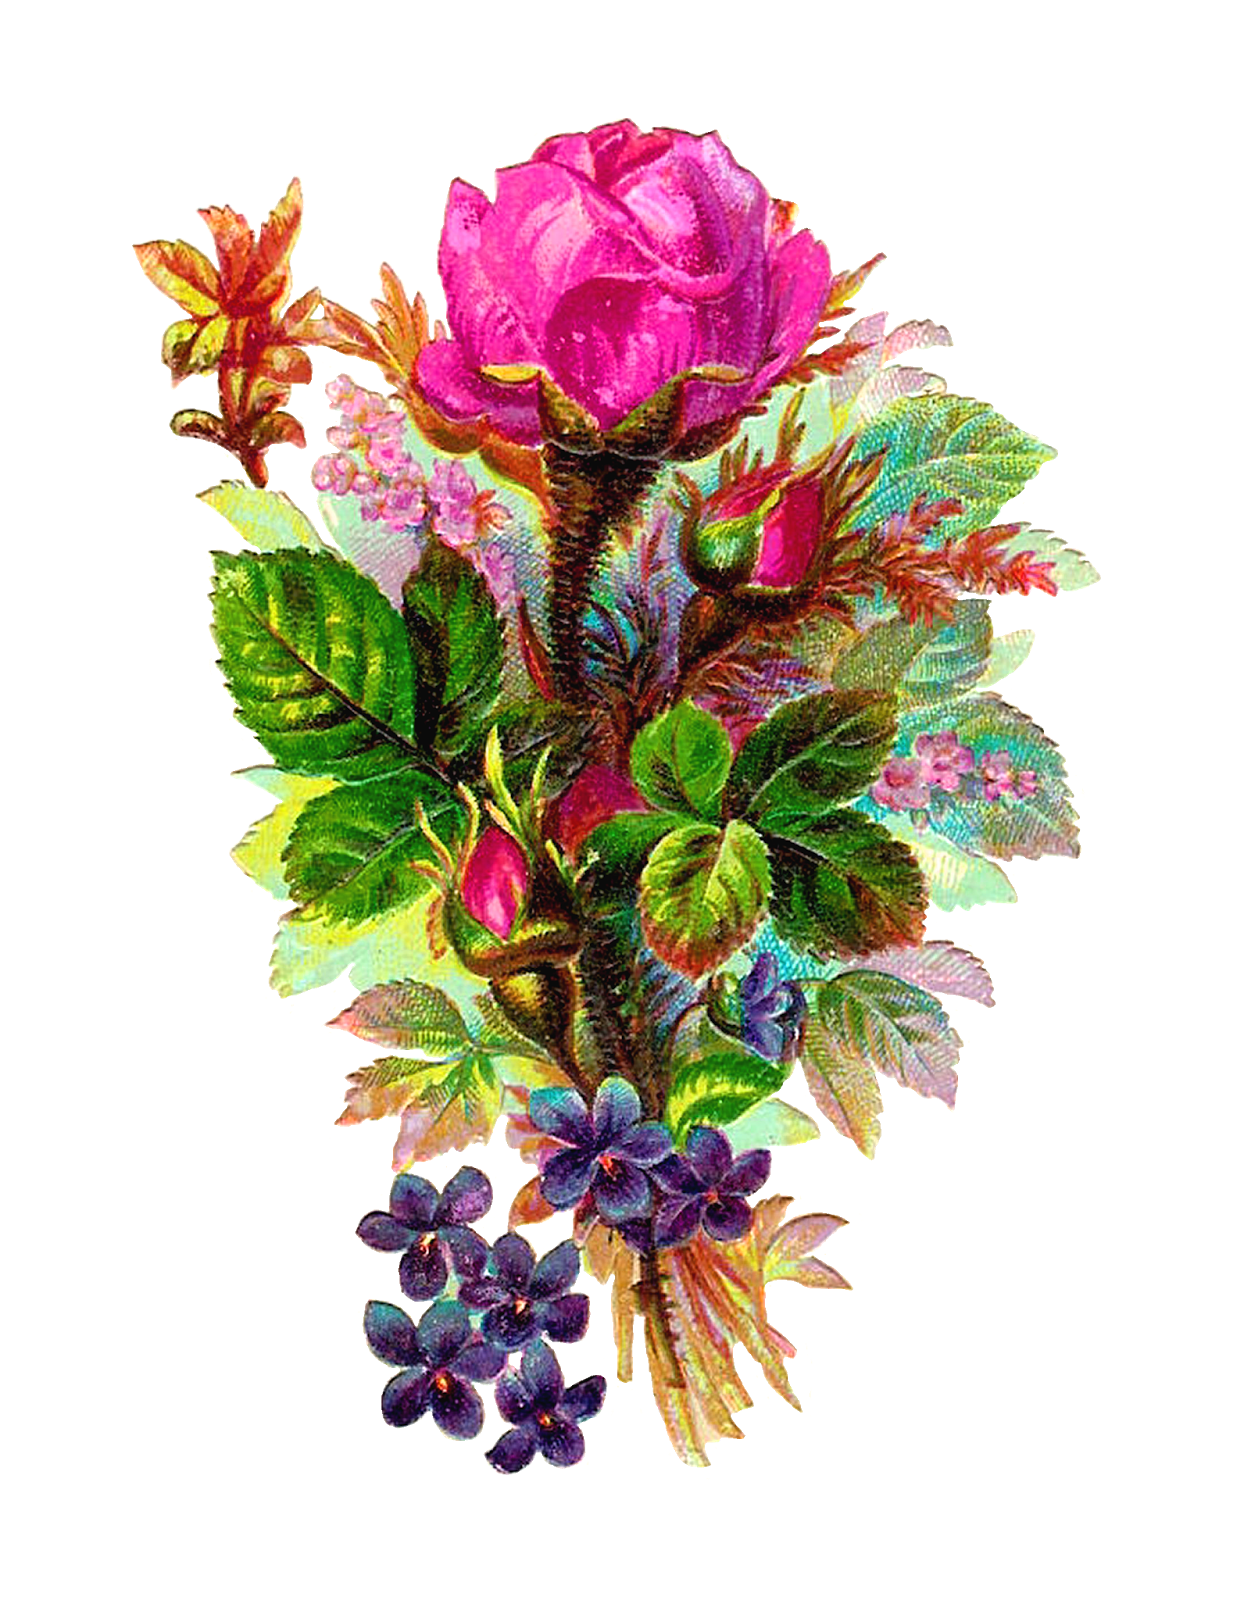 Bouquet Of Flowers Clip Art Images